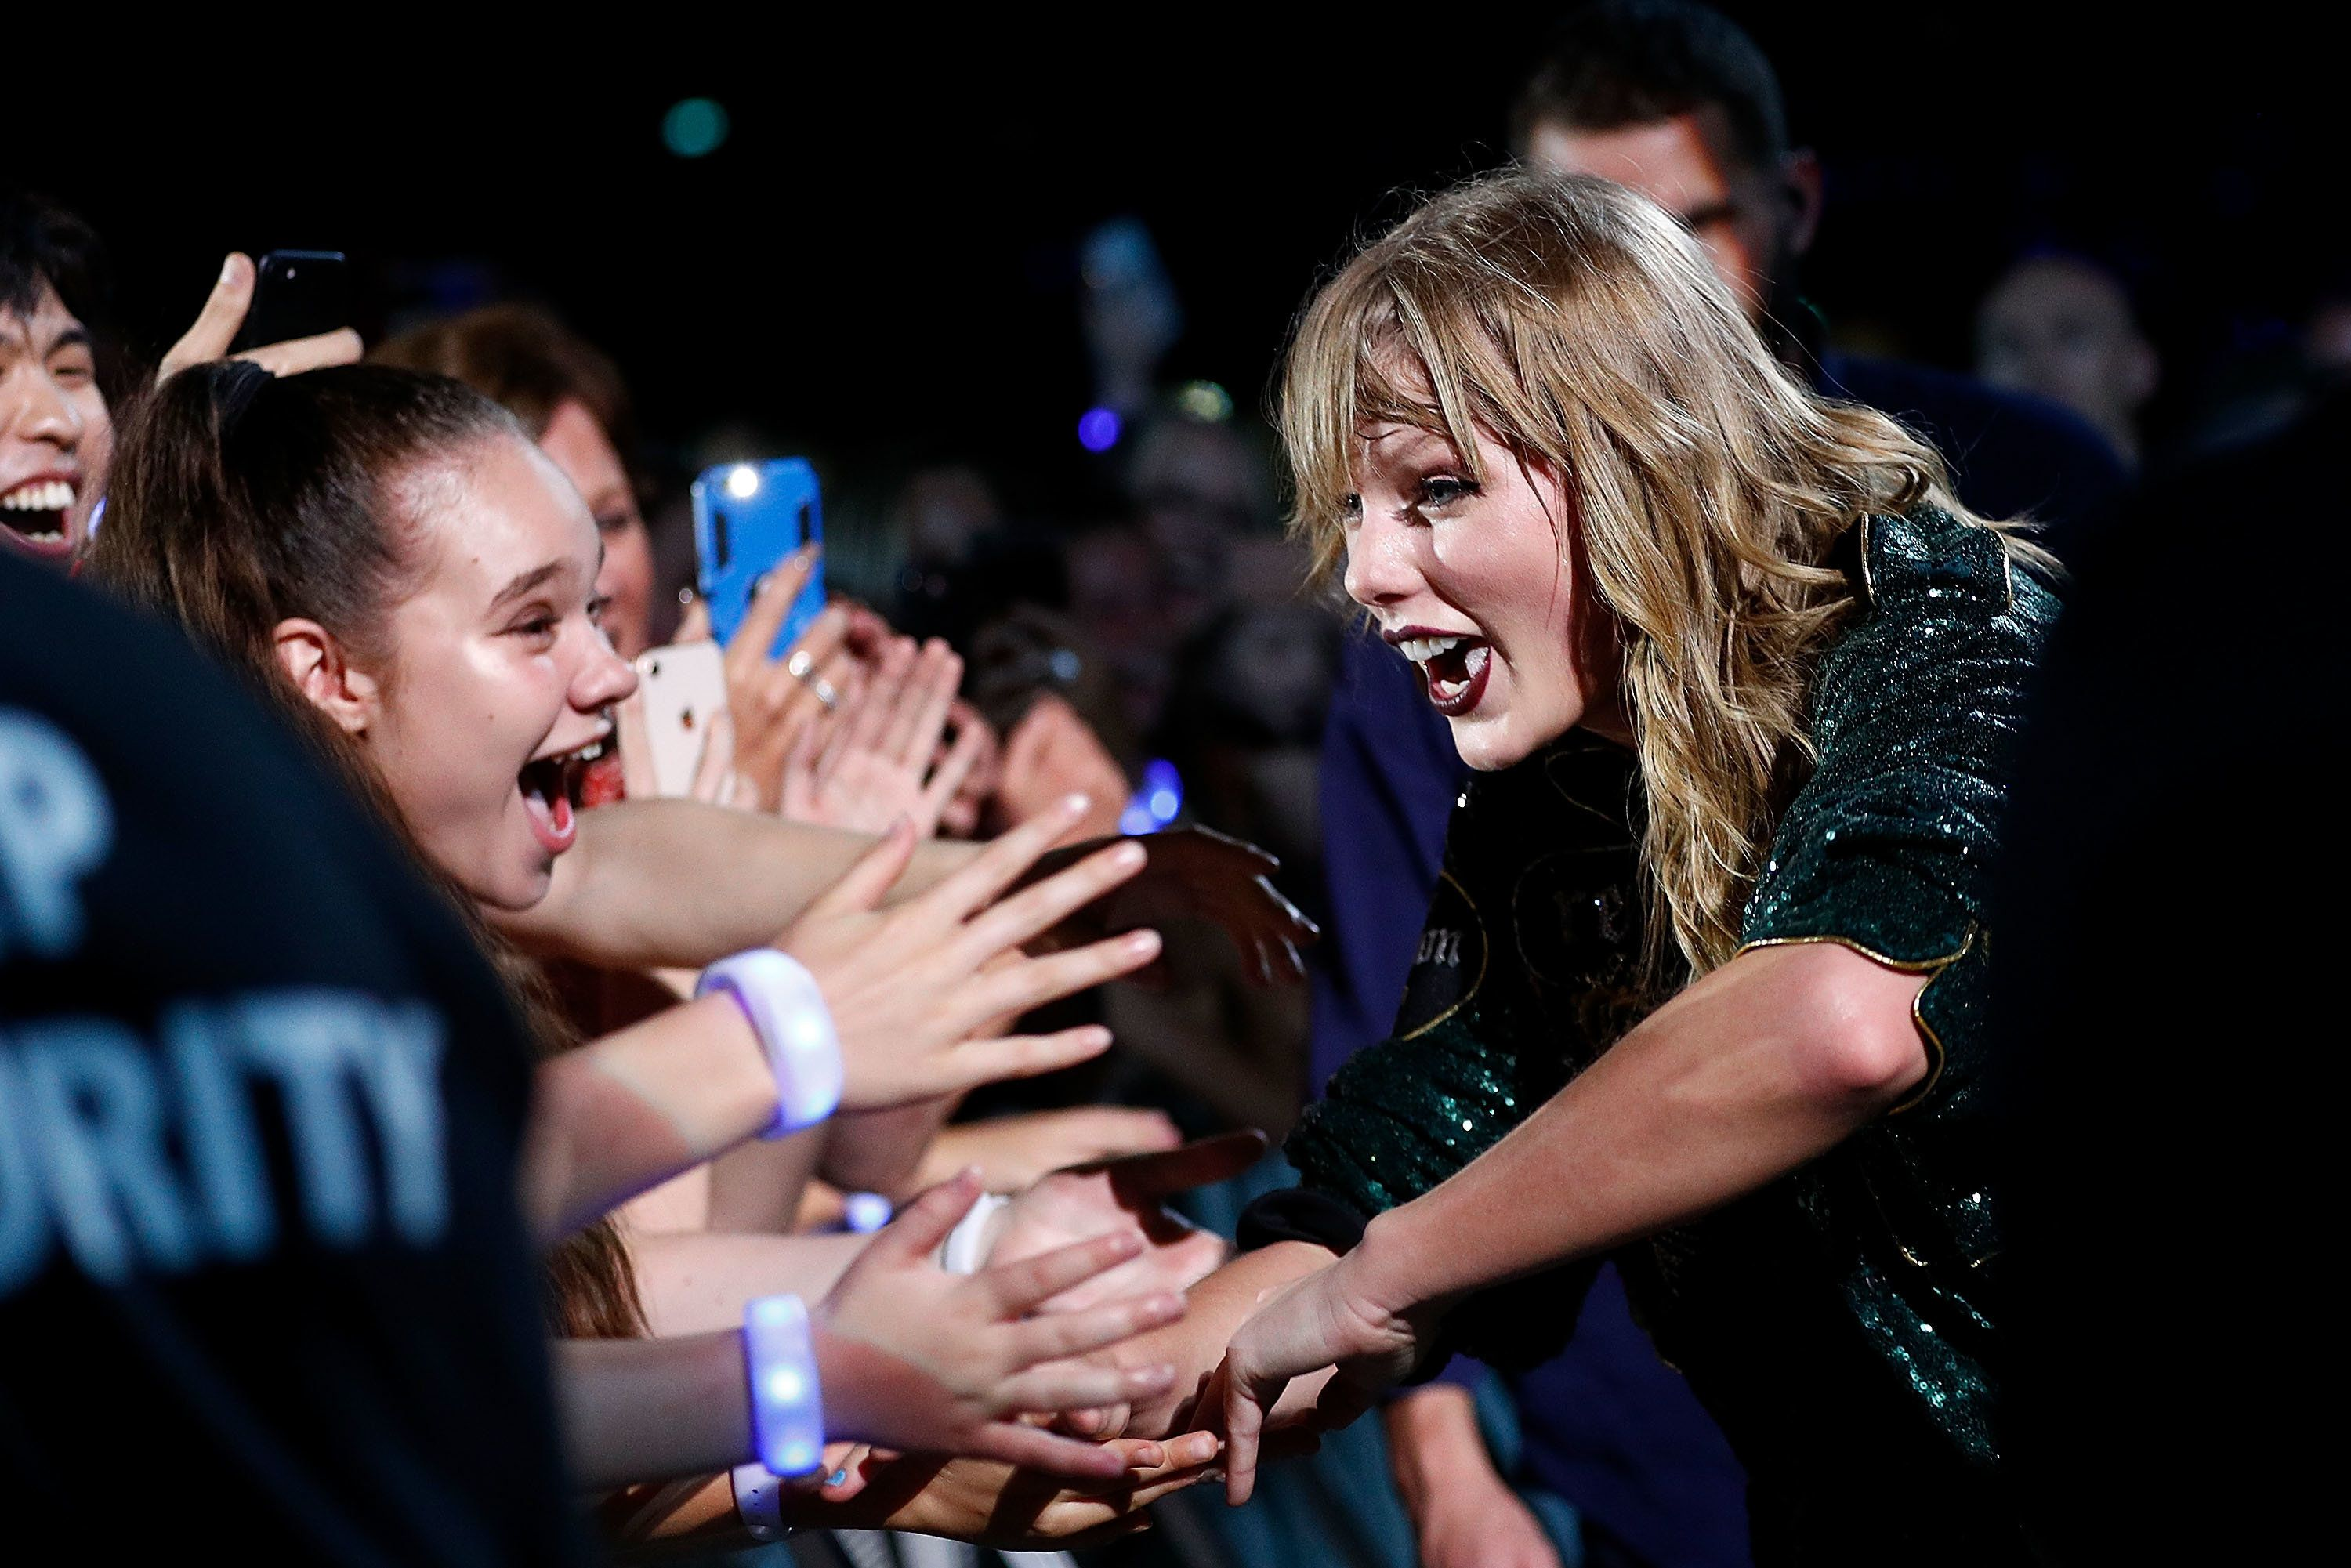 Taylor Swift greets fans at the Brisbane, Australia, stop of her Reputation tour.